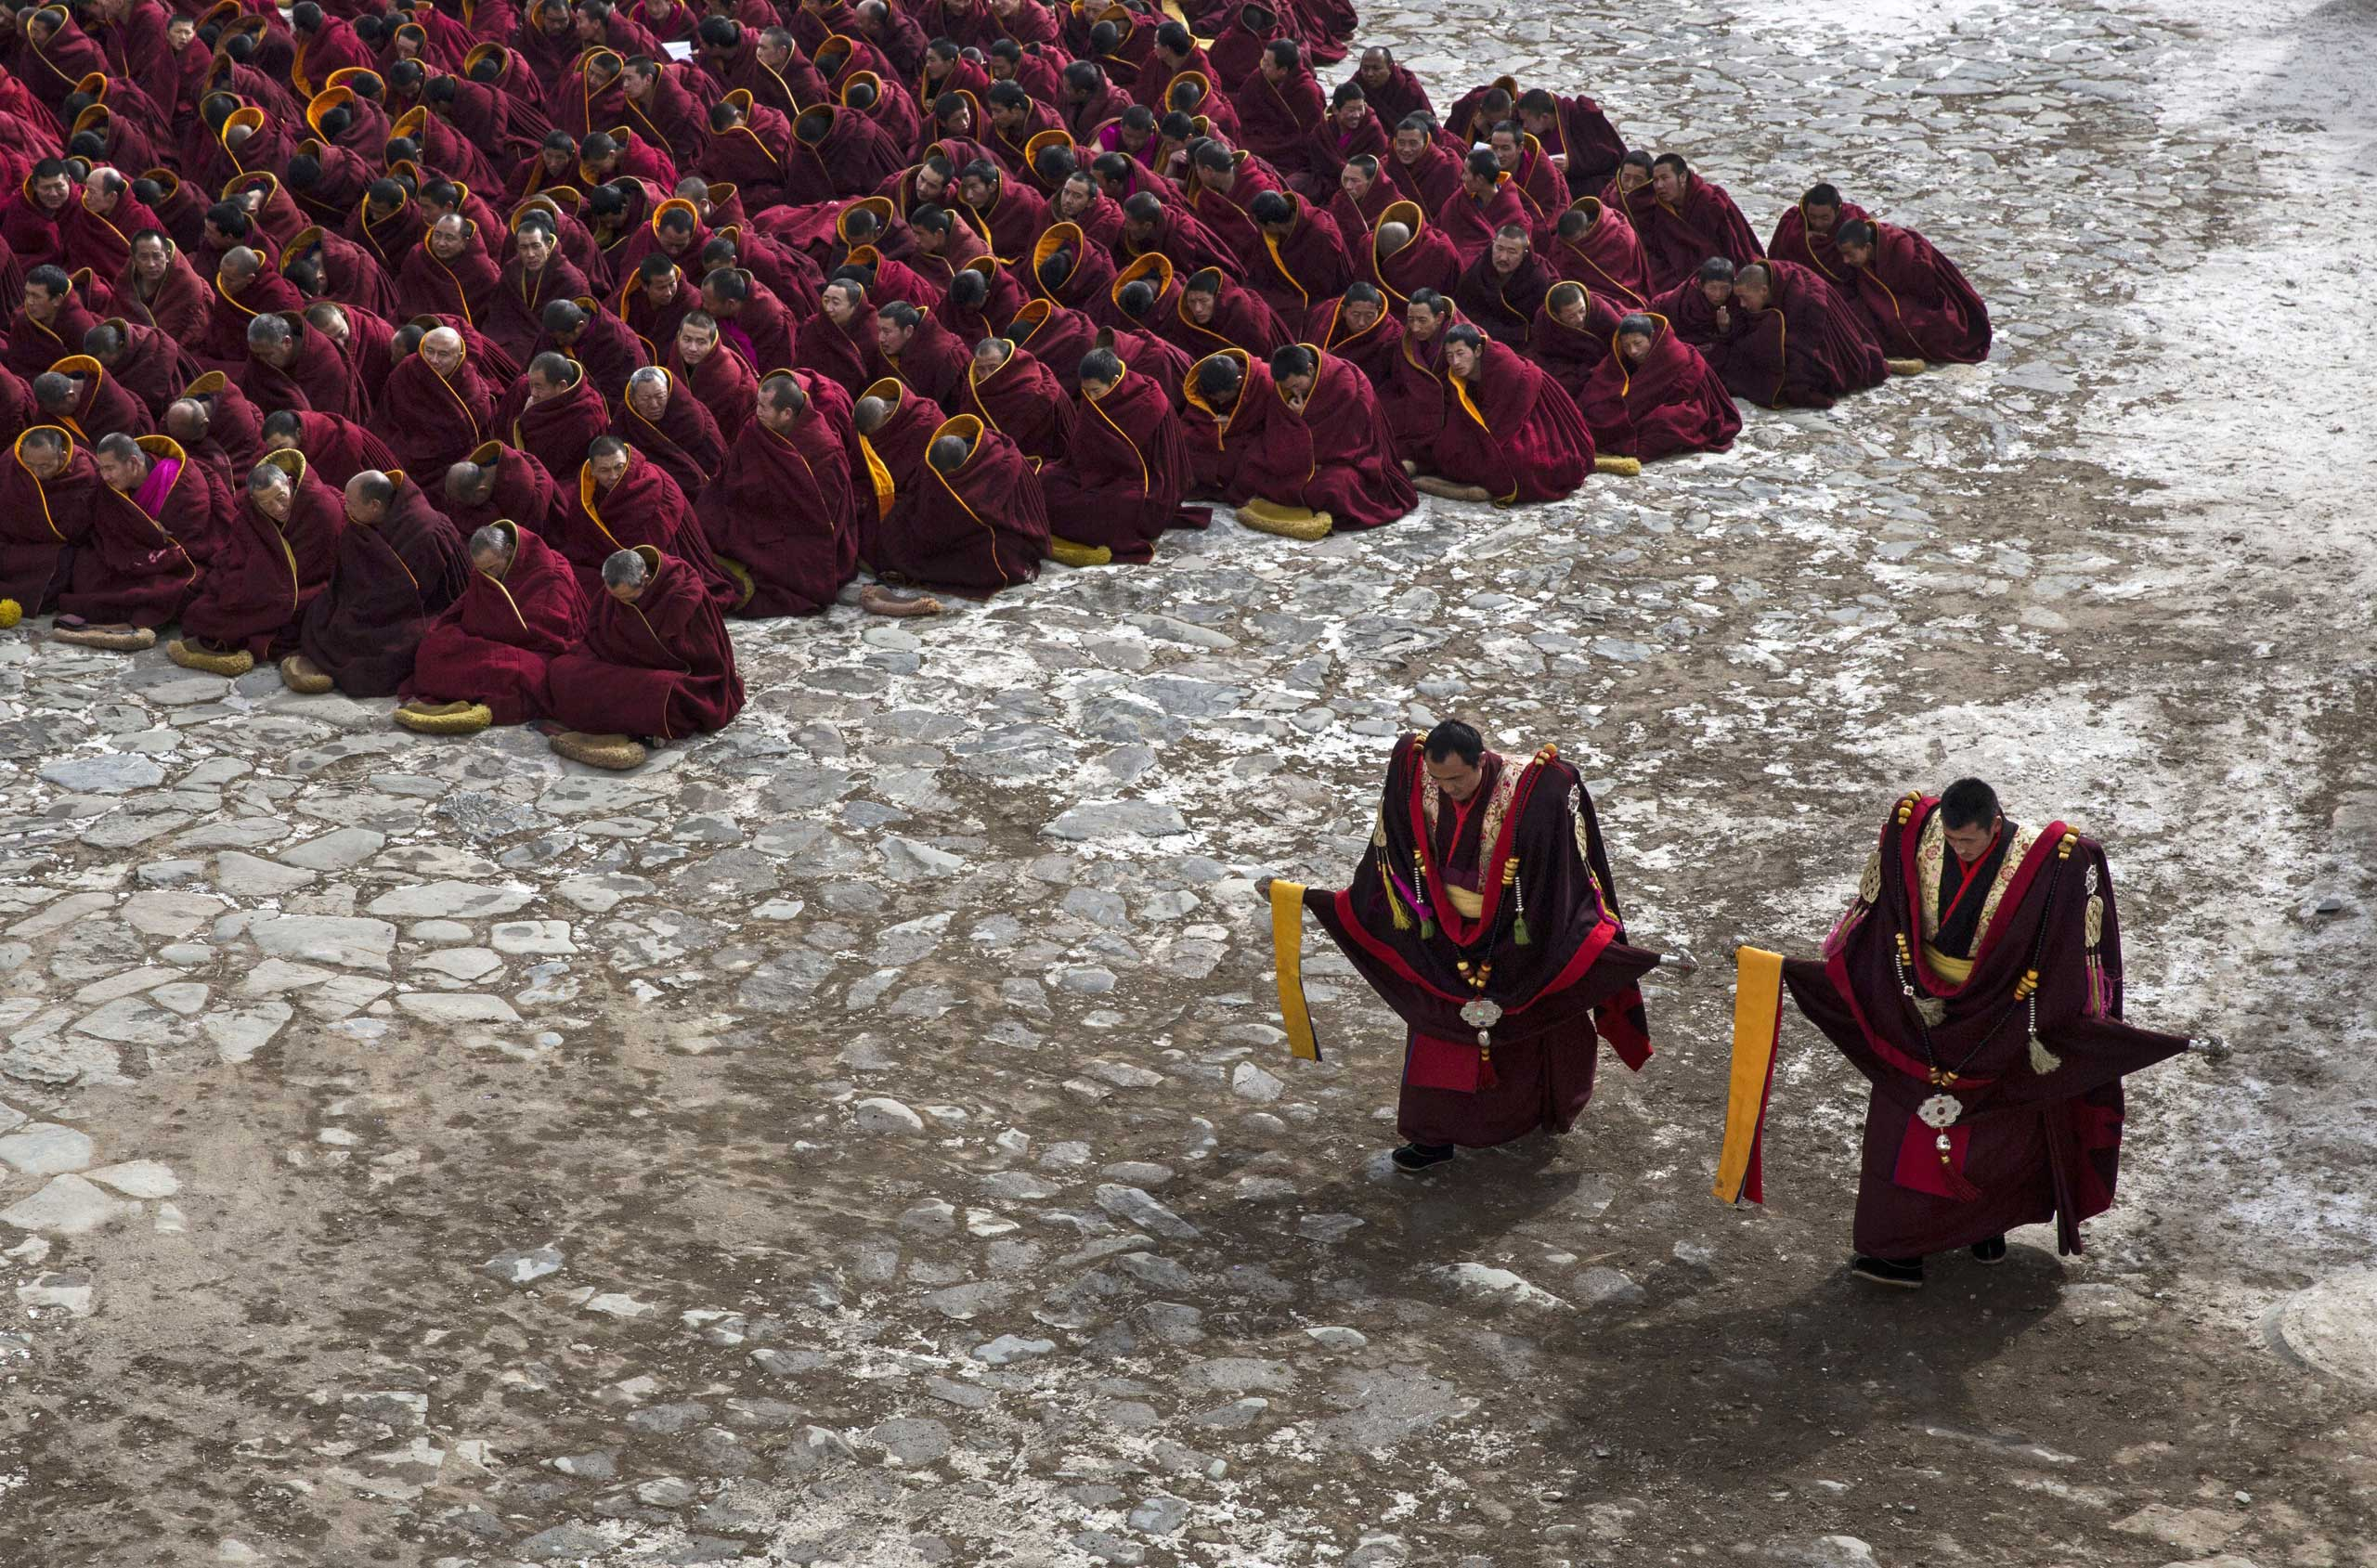 Tibetan Buddhist monks take part in a special prayer during Monlam or the Great Prayer rituals on March 5, 2015 at the Labrang Monastery.